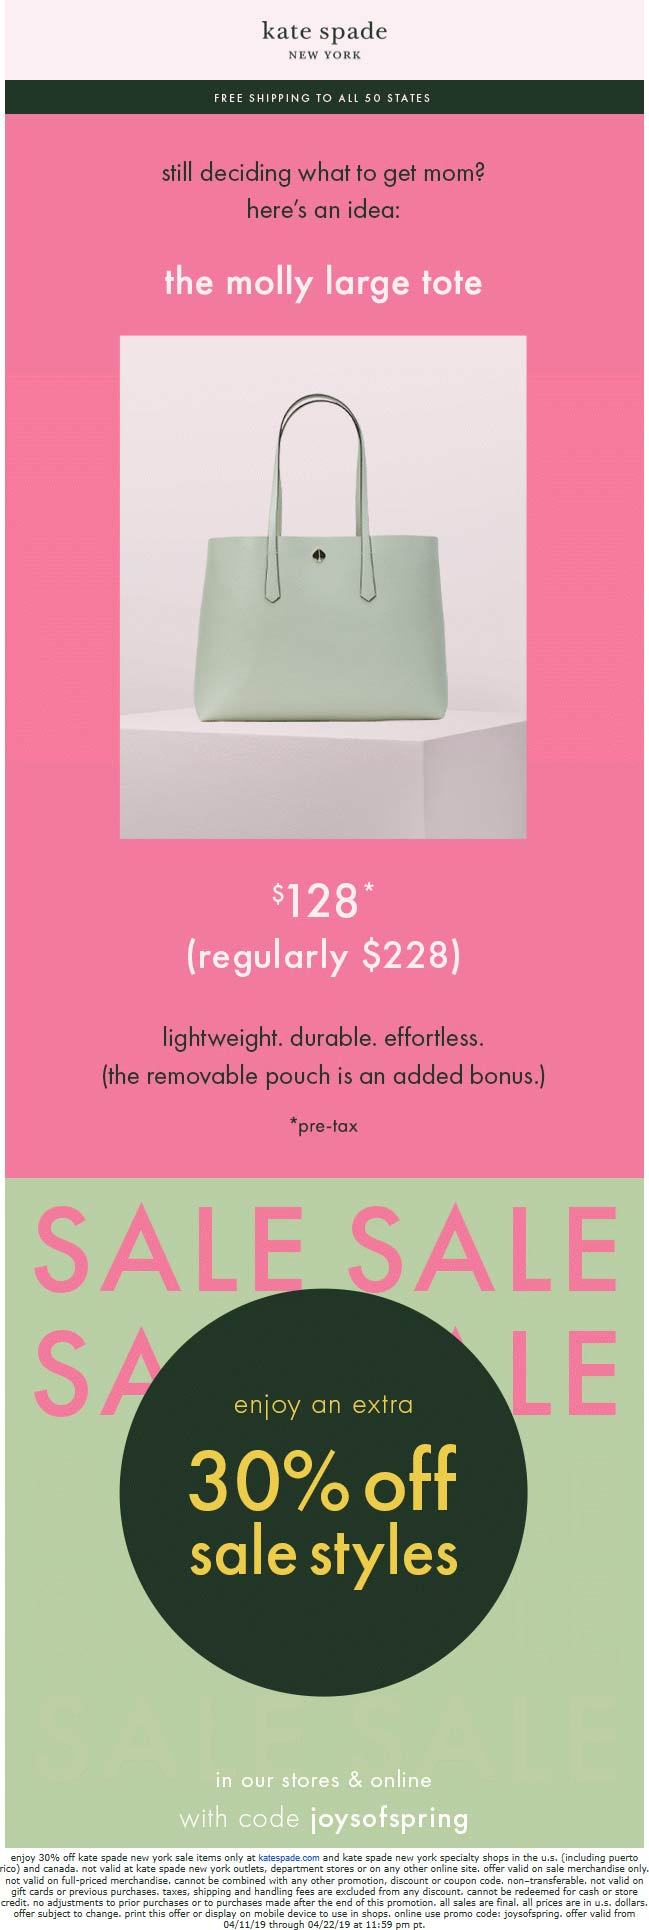 Kate Spade Coupon June 2020 Extra 30% off sale items at Kate Spade, or online via promo code joysofspring